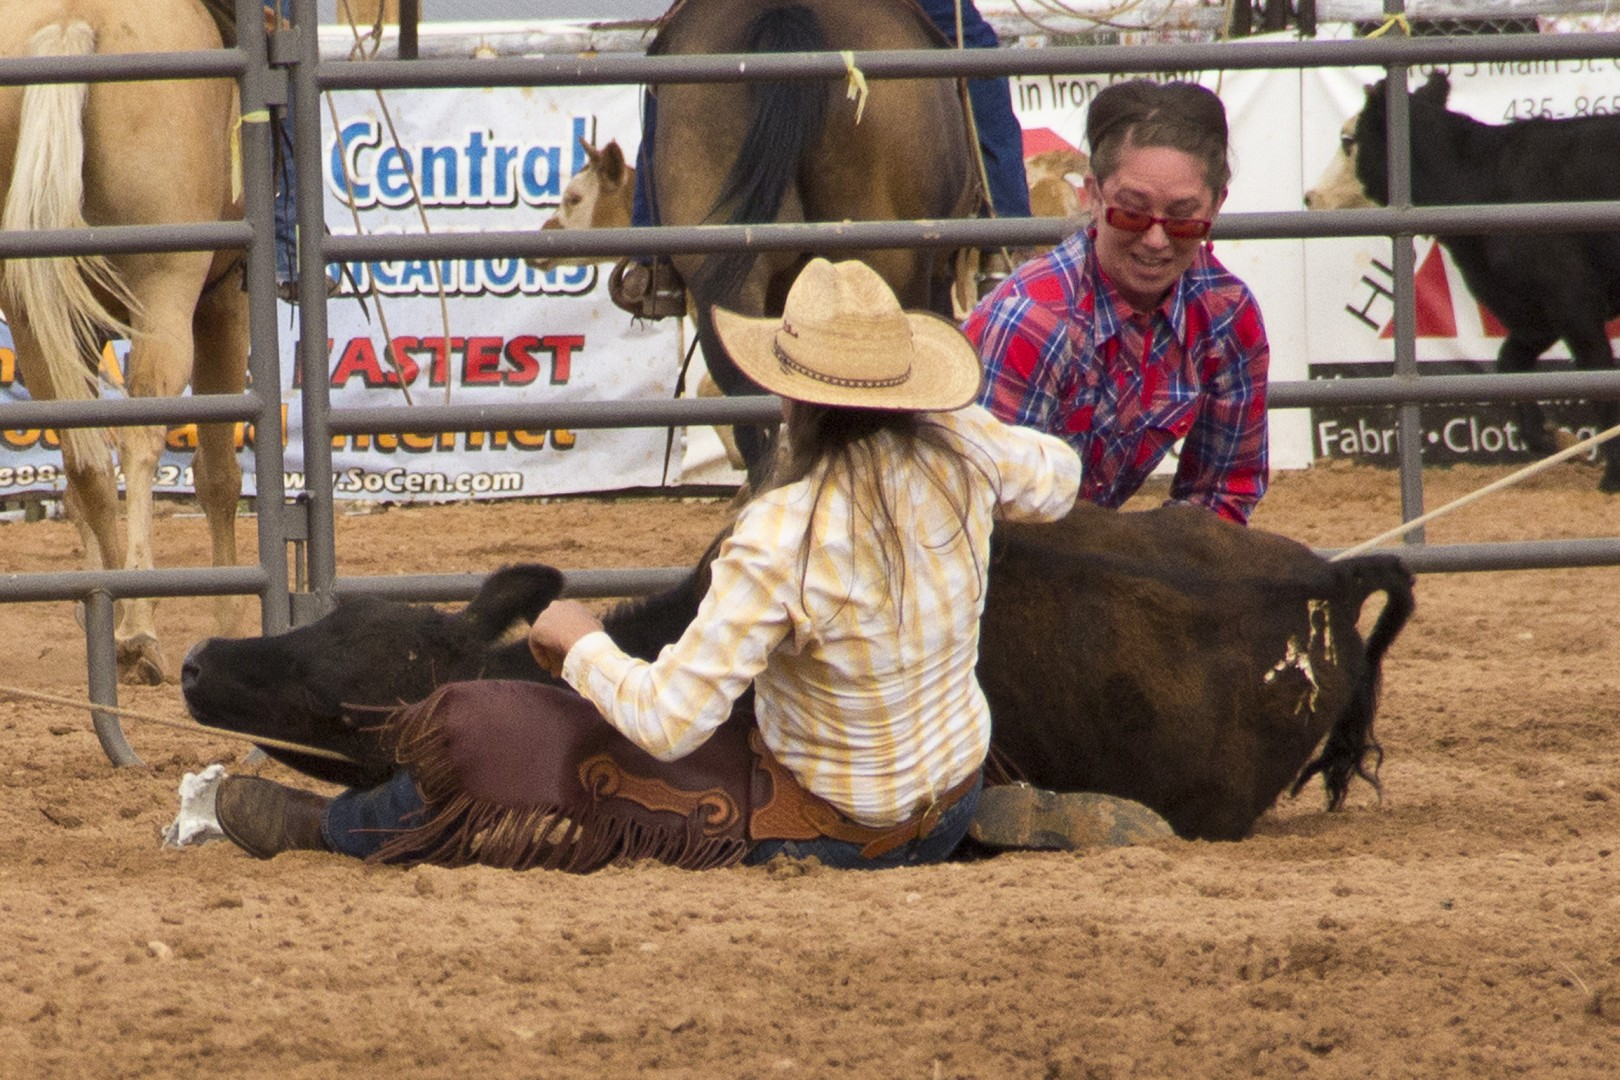 Dove Jorgeson and Kimber Larson (in the light colored shirt) hold their own while making a calf behave. Iron County Fair, Parowan, Utah, Aug. 31, 2013 | Photo by John Teas, St. George News